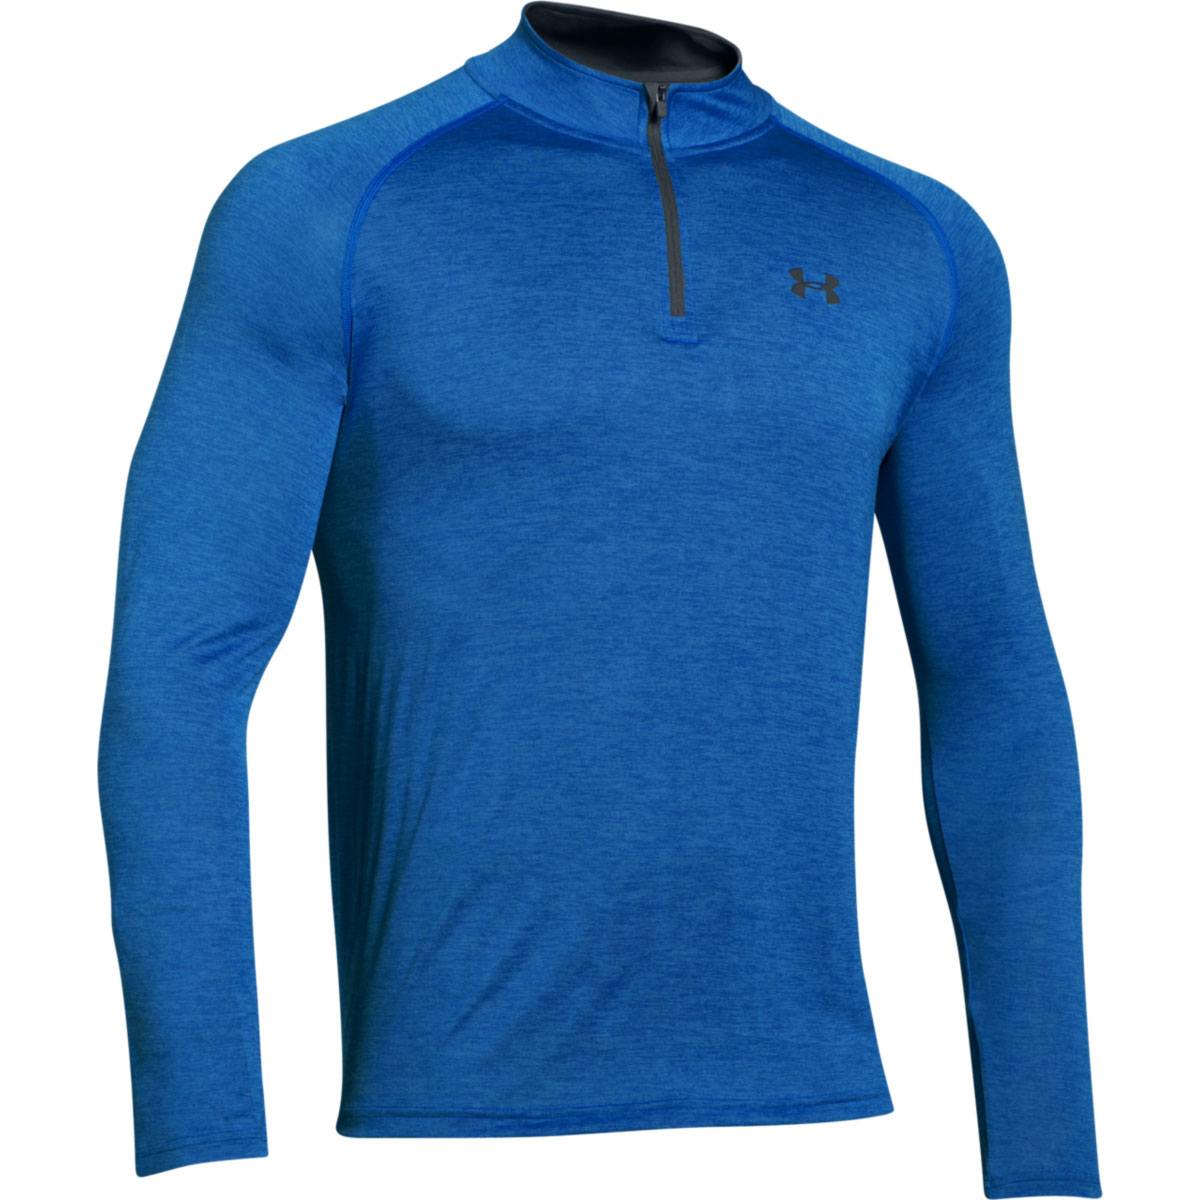 5410220d2 Under Armour Mens UA Tech 1/4 Zip Long Sleeve Top Workout Layer 27 ...